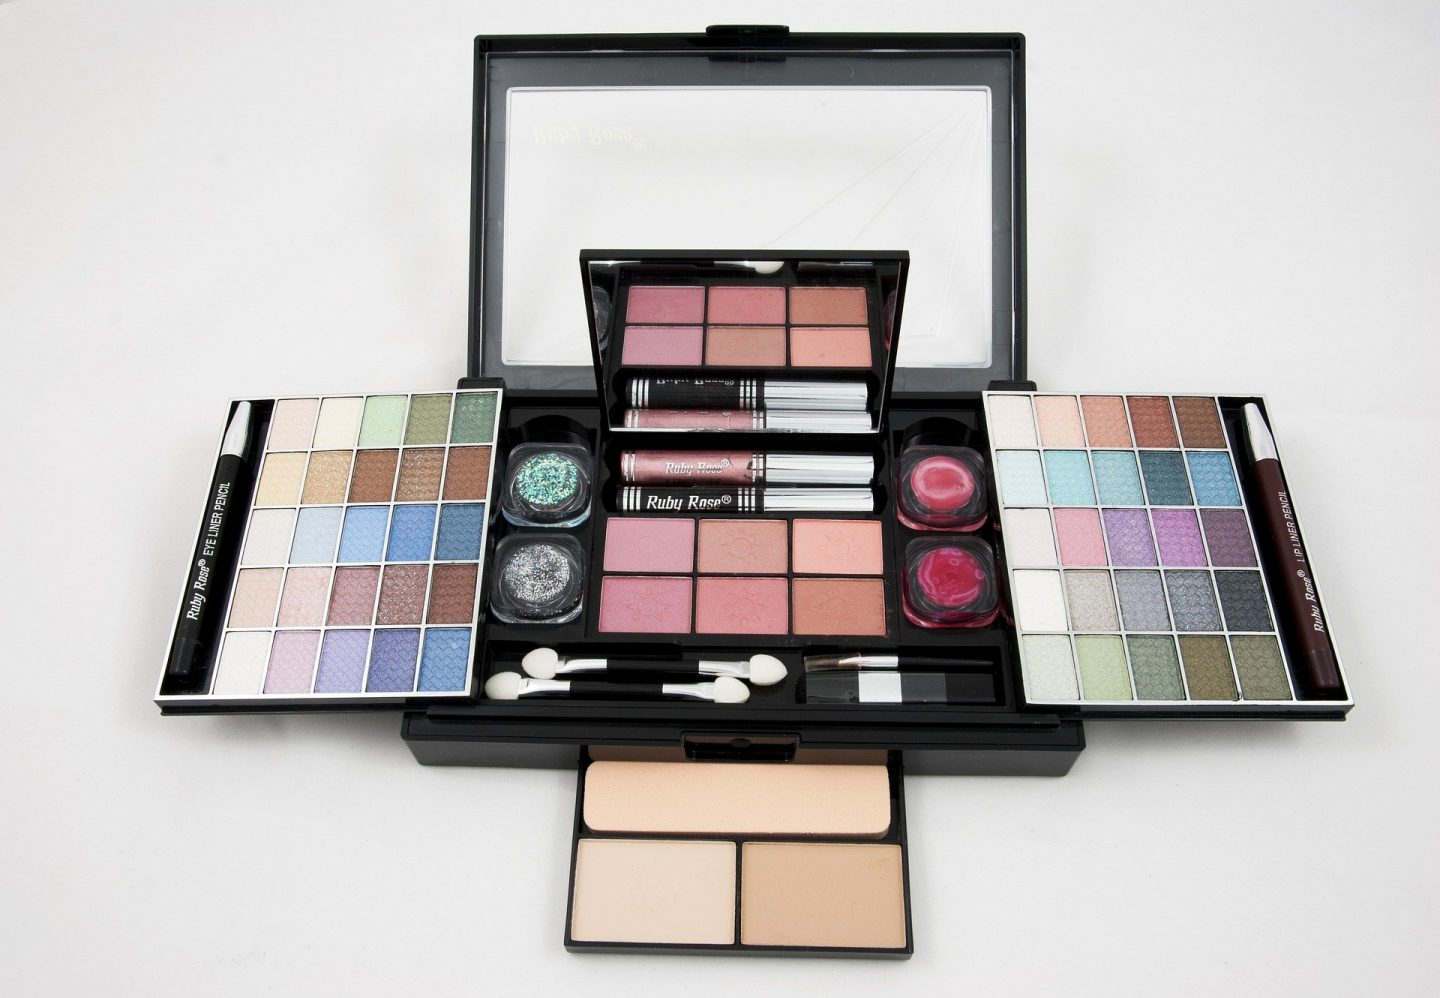 eye-shadows and blush in multi-storage makeup organizer kit